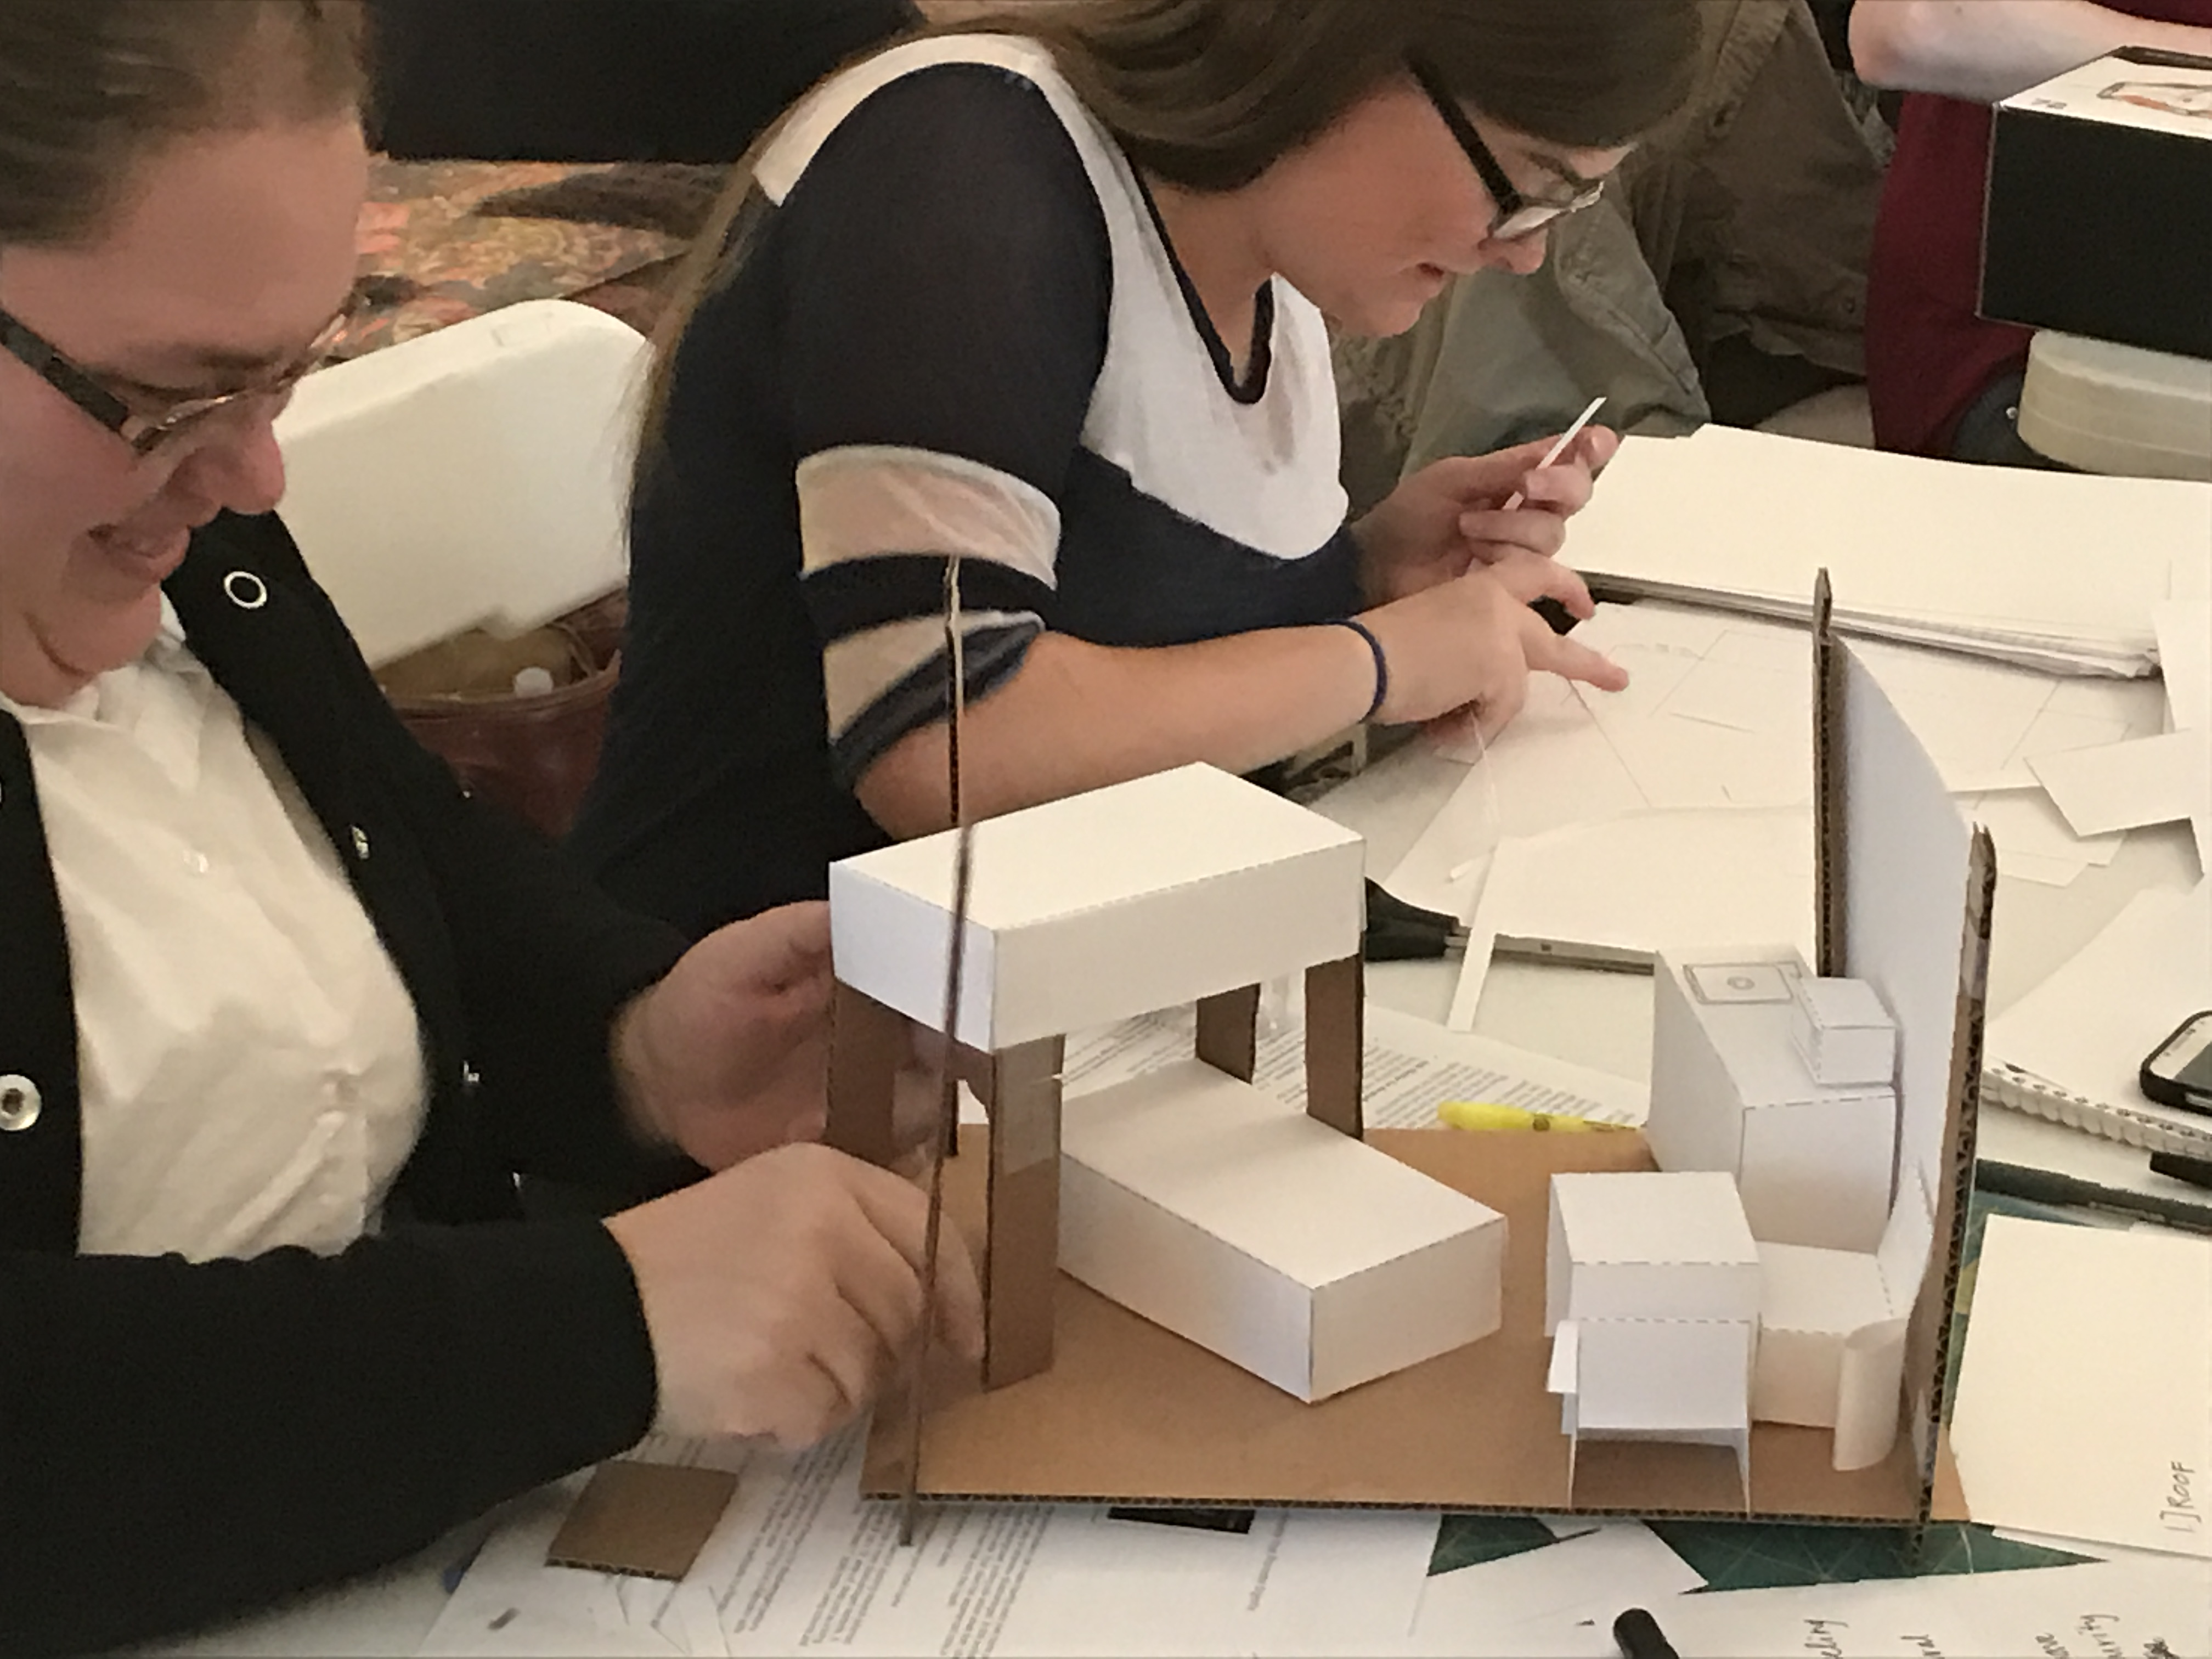 Interior design students constructed conceptual 3D models in the workshop.